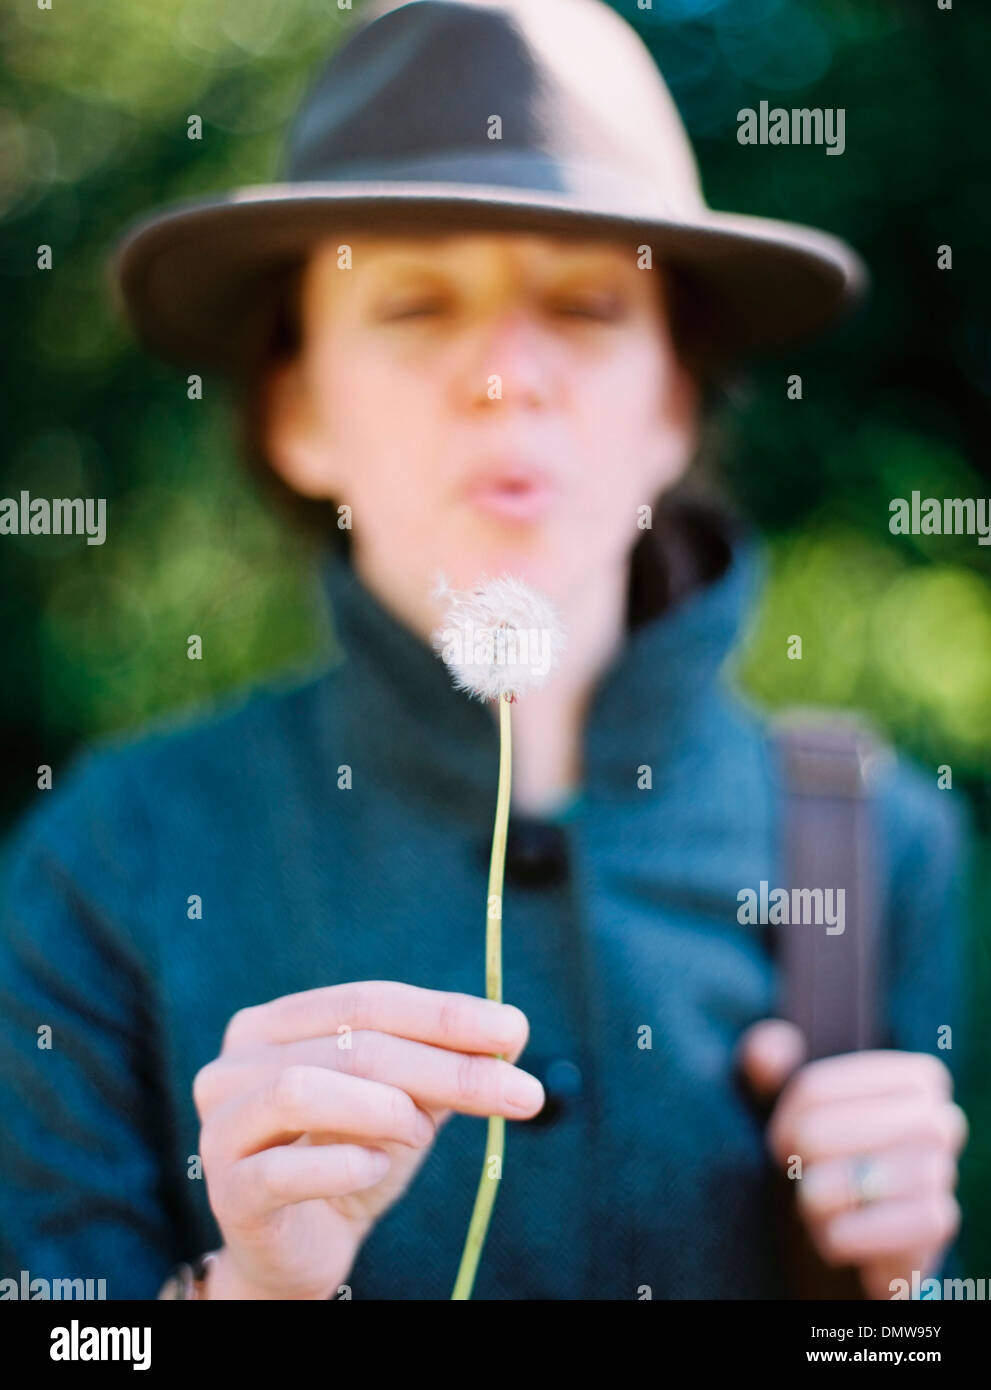 A woman blowing a dandelion clock seedhead. A traditional game. - Stock Image